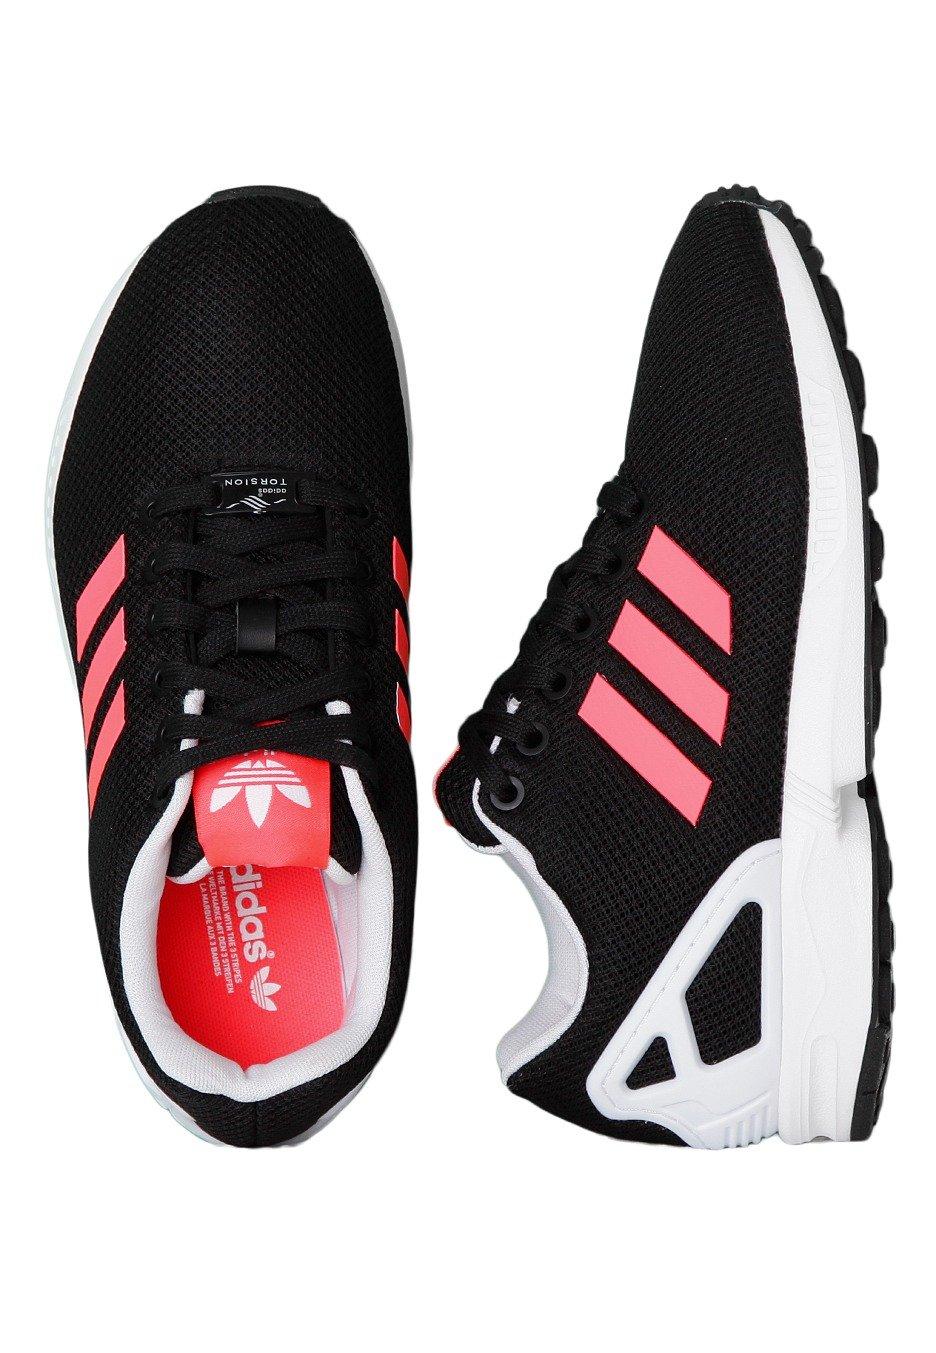 adidas zx flux size guide